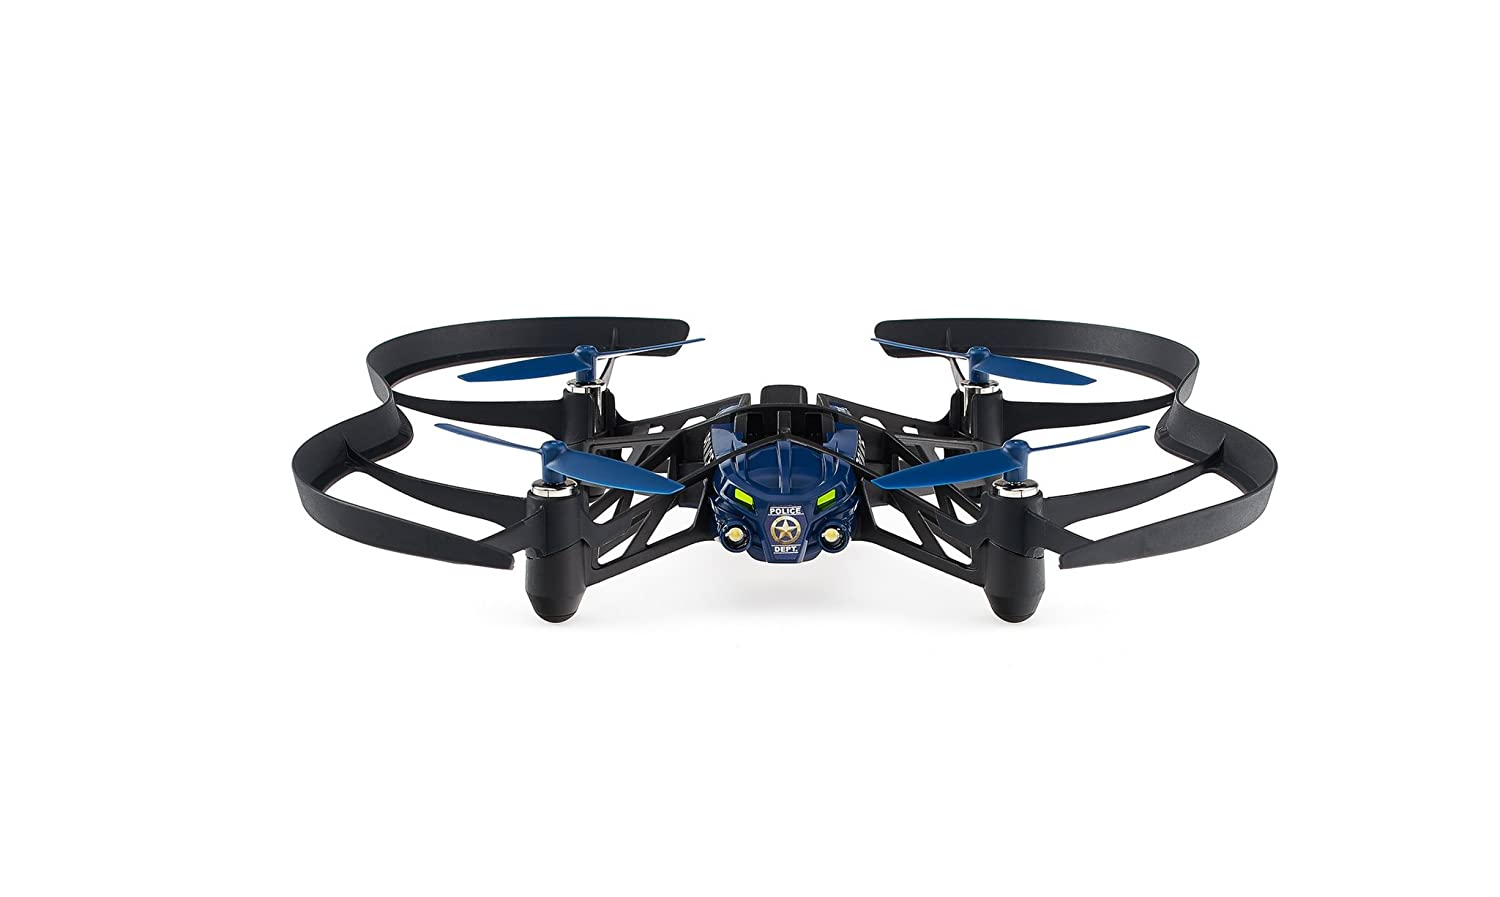 PARROT AIRBORNE NIGHT DRONE WINDOWS 7 64BIT DRIVER